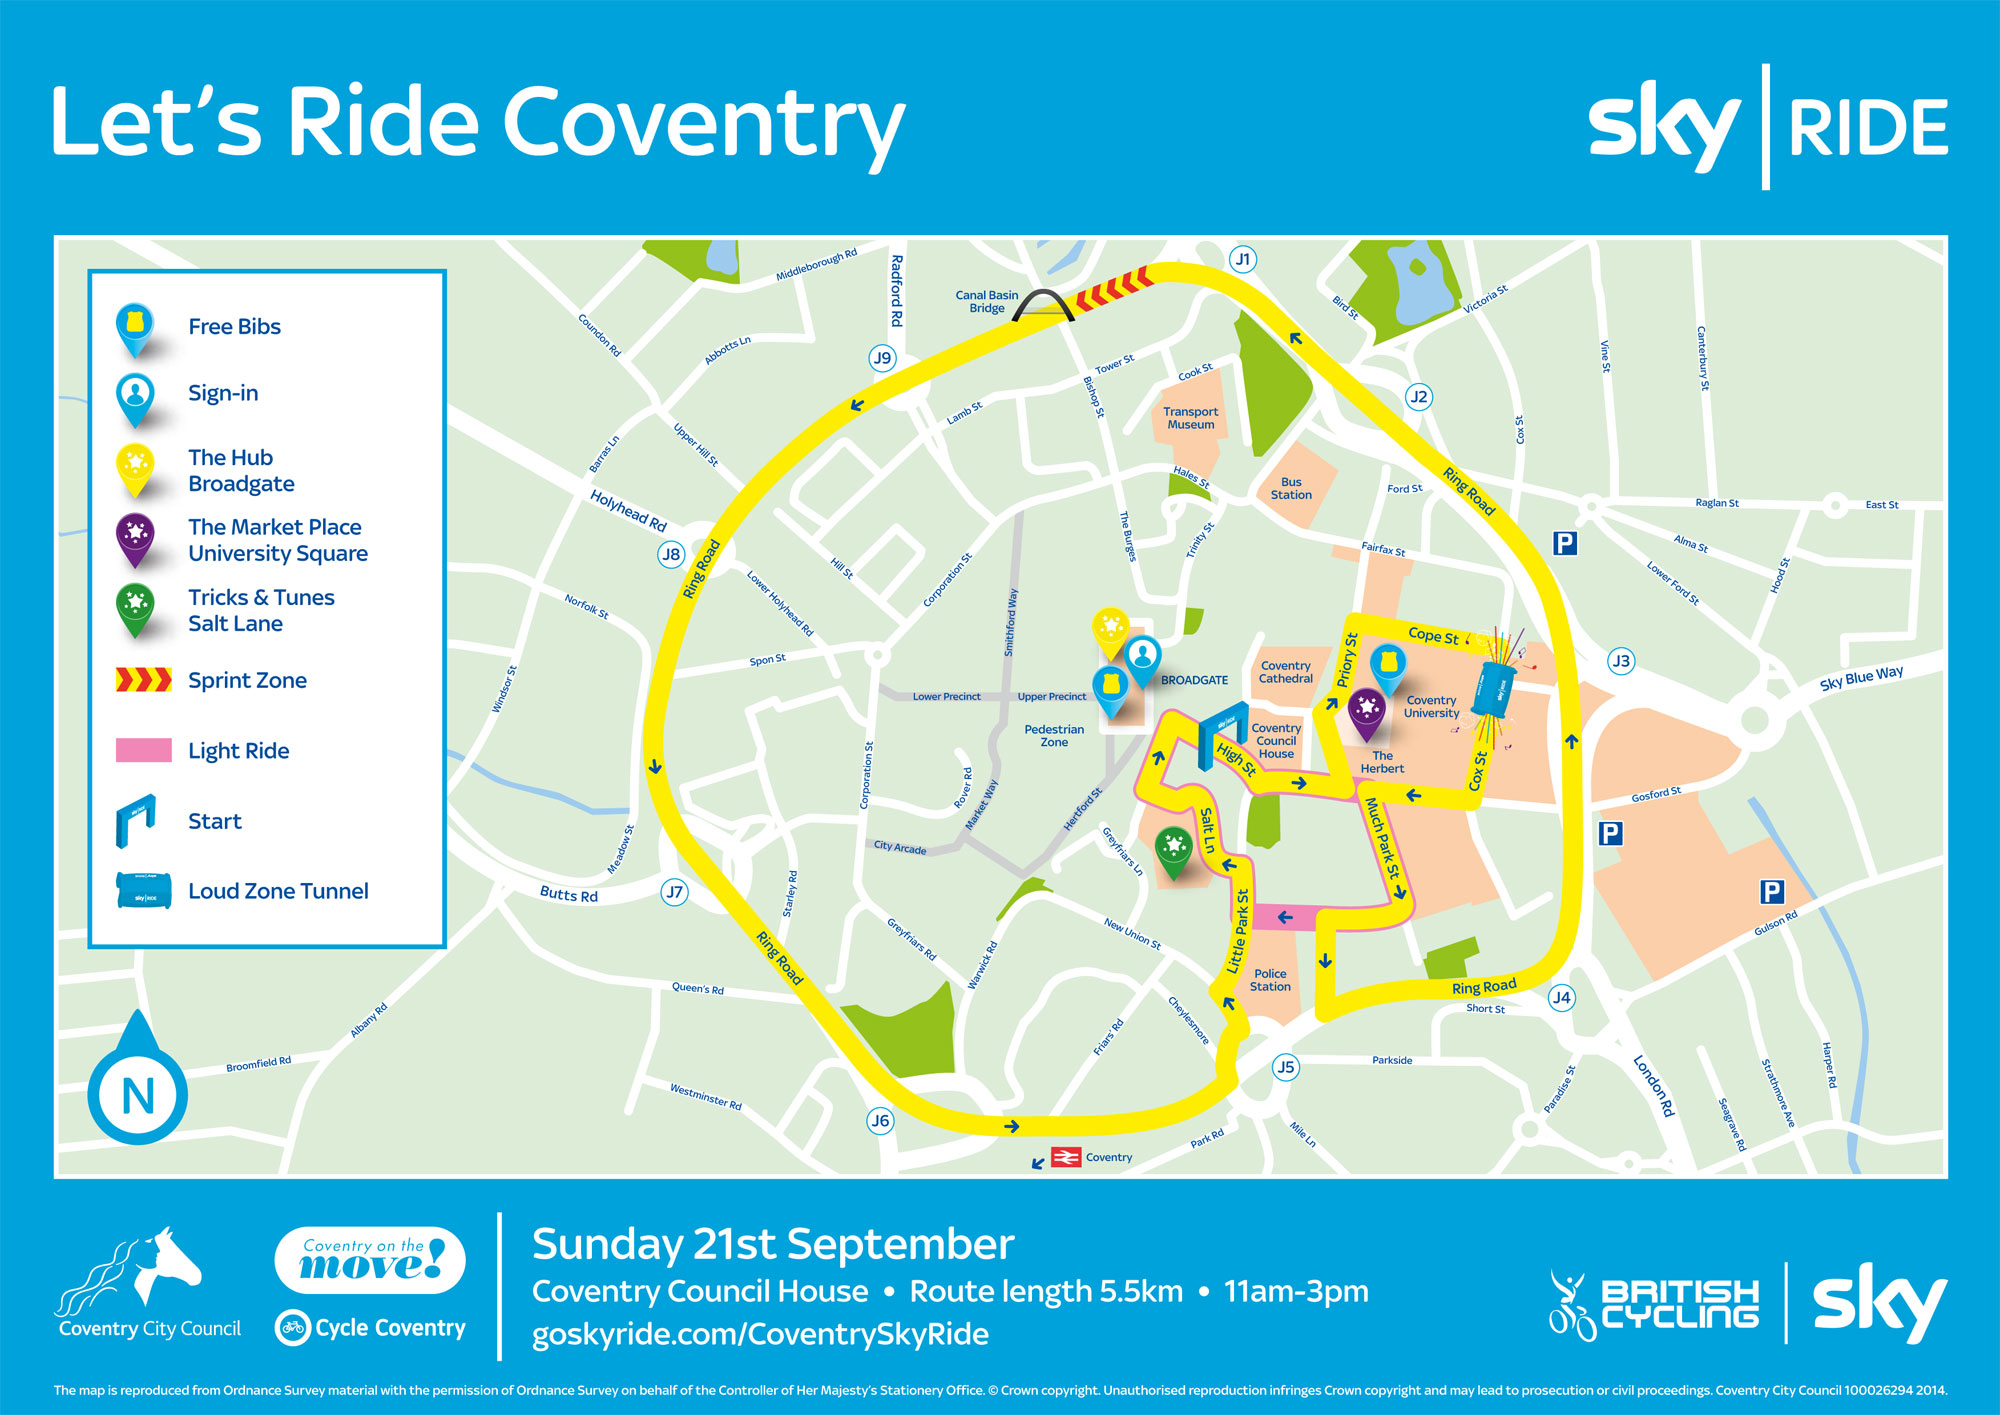 Sky Ride Coventry Heart West Midlands